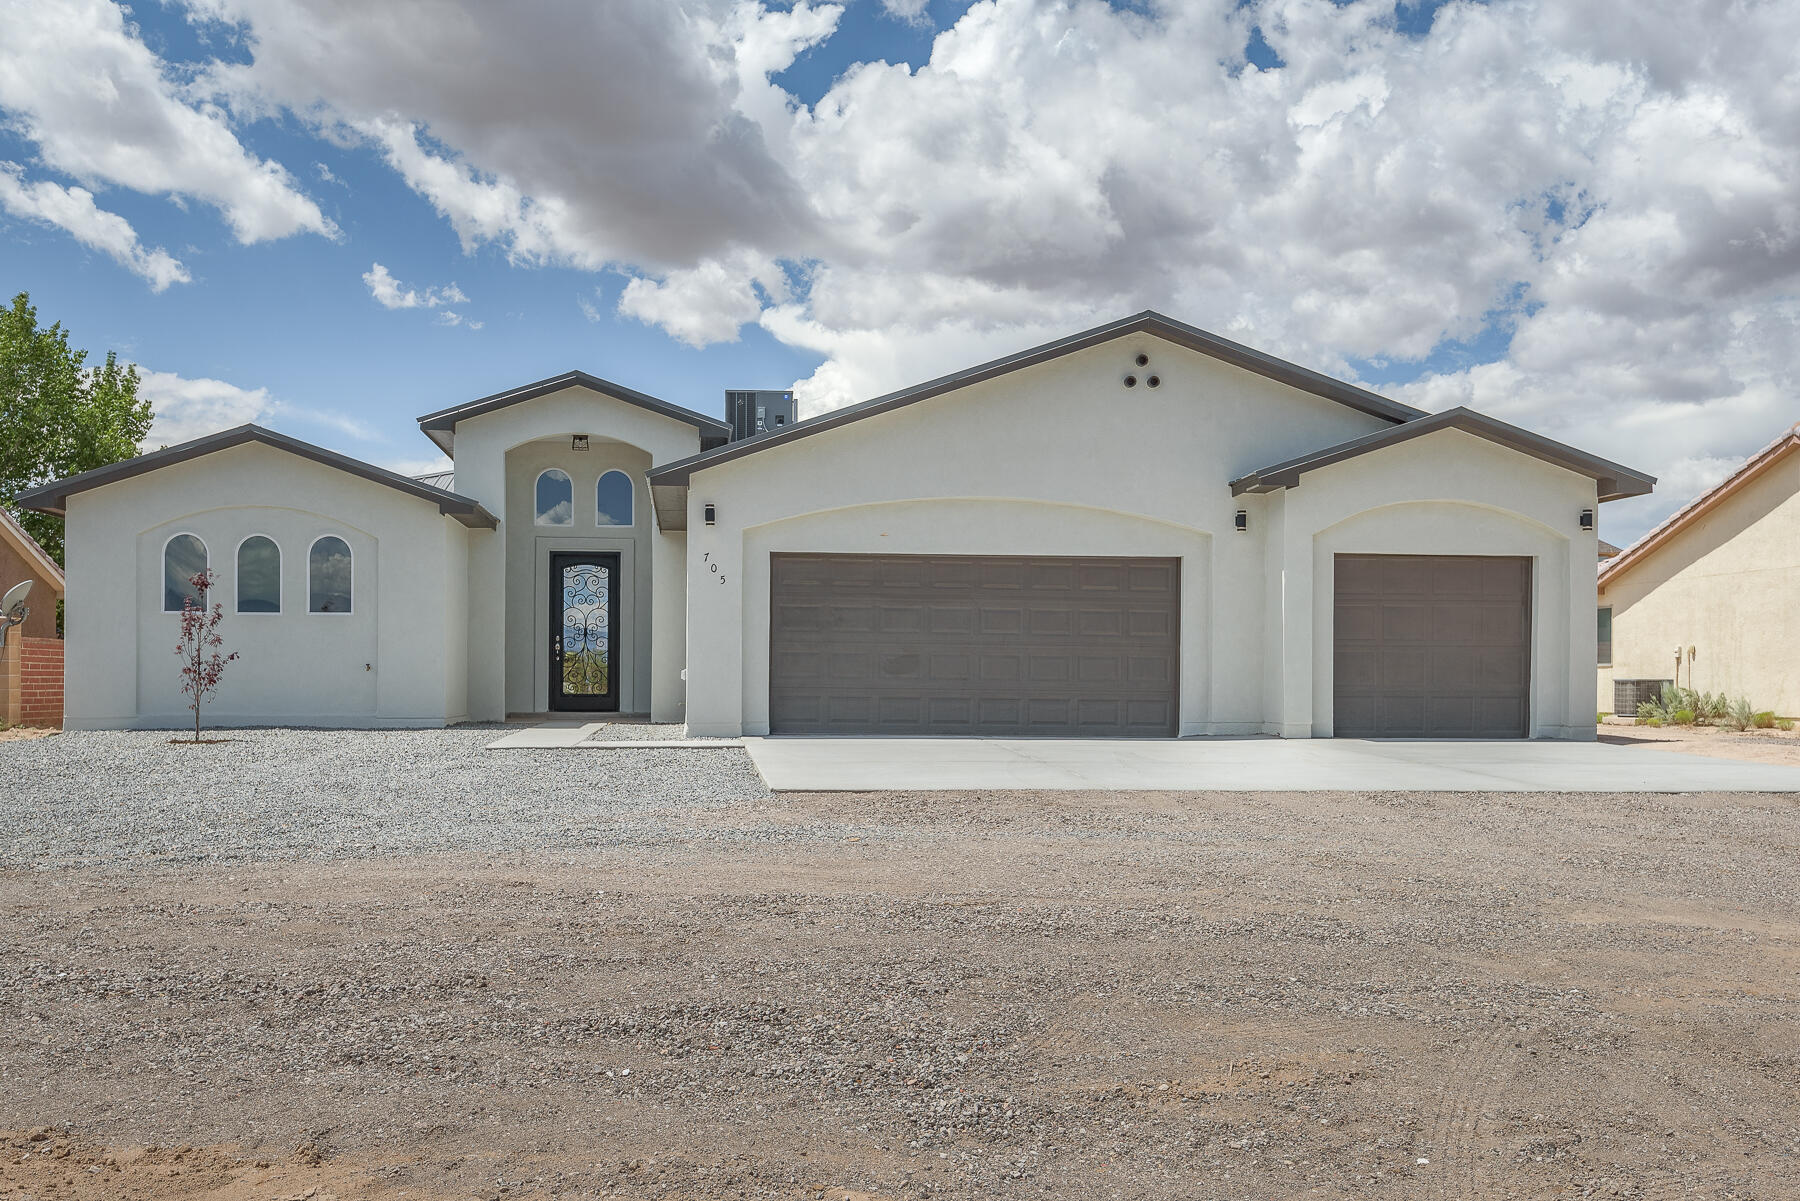 Spectacular, custom new build on 1/2 acre in Rio Rancho Estates! Be greeted by a custom wrought-iron privacy door & vaulted ceiling in the foyer. The open concept living/dining/kitchen area is adorned w/ natural light from the picture-frame windows. Chef's Kitchen boasts a large island, ebony granite, farm sink, designer backsplash, SS appliances, stacked cabinets, & large pantry. Split BR design allows for privacy in the MBR which has His/Hers closets & vanities, custom soaking tub & barn-style shower glass door. BR's 2&3 share a Jack-n-Jill. Powder bath for guests. Utility room w/lav sink. Finished 3 car garage. Plank tile thru-out w/carpet in BR's. Huge covered back patio. Metal roof will last! BACKYARD ACCESS & VIEWS!